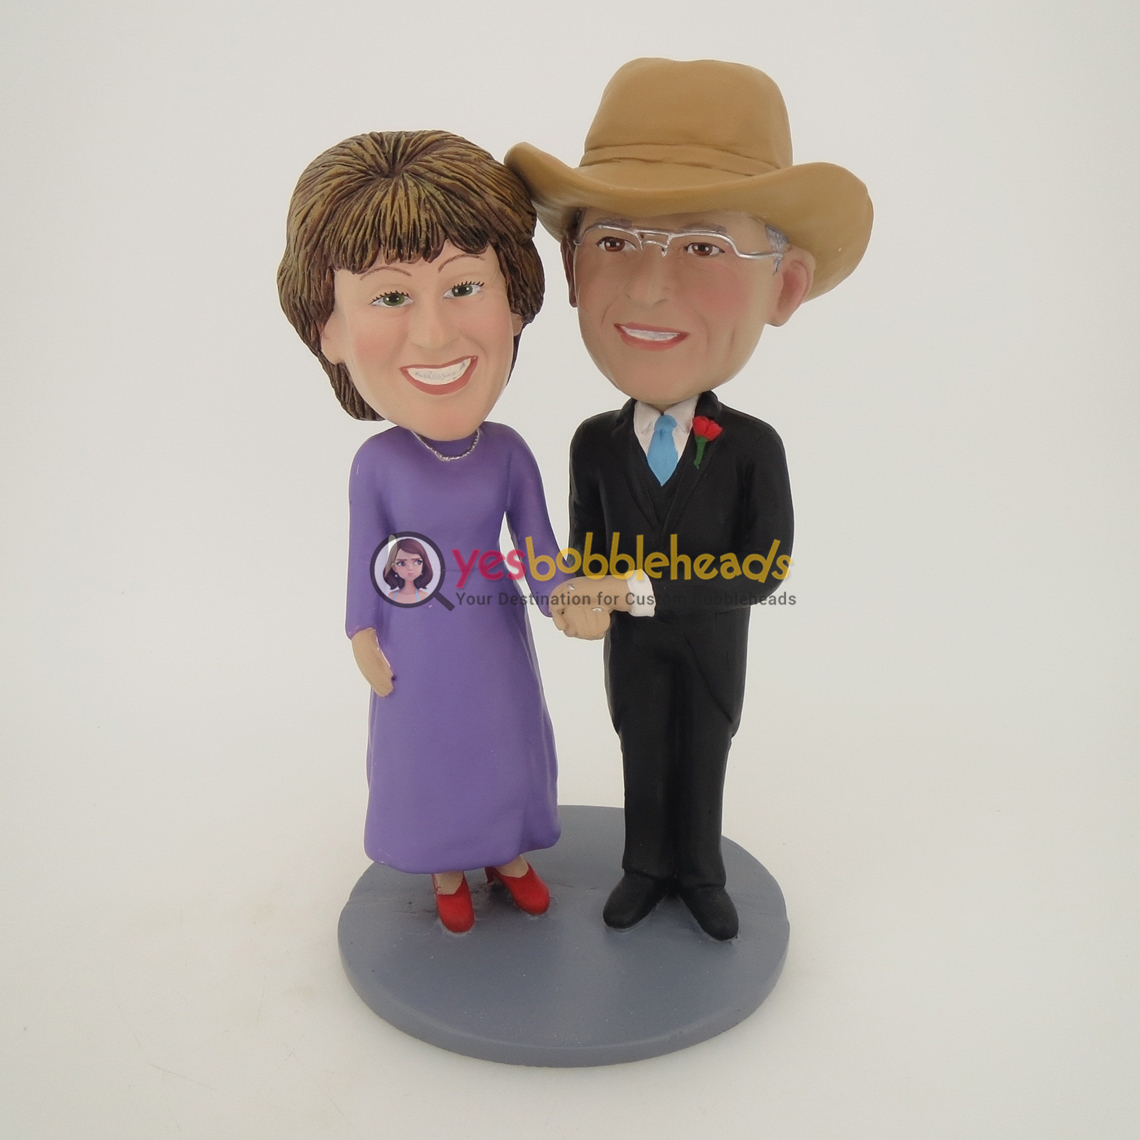 Picture of Custom Bobblehead Doll: Couple with Cowboy Hat